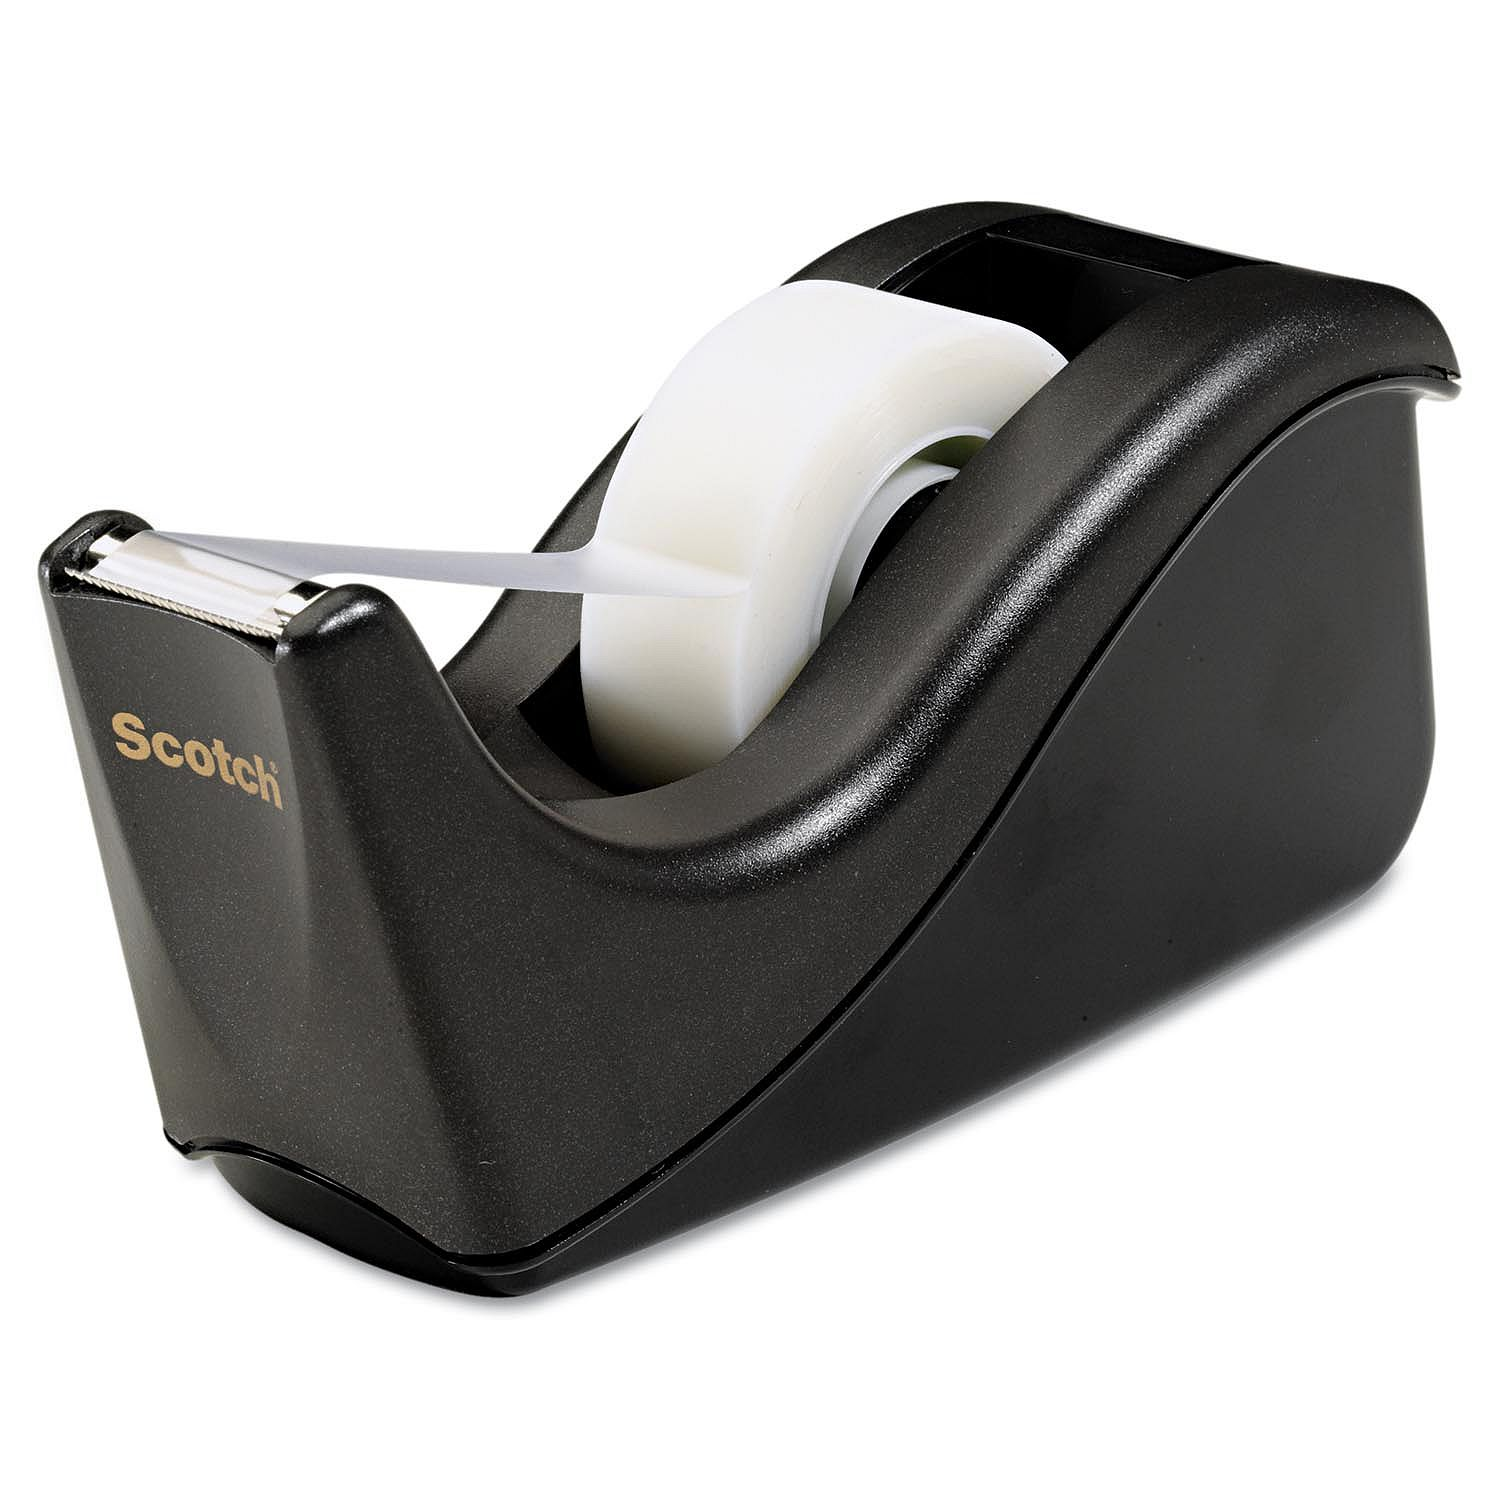 Scotch Value Desktop Tape Dispenser, 1inch Core, Two-Tone Black